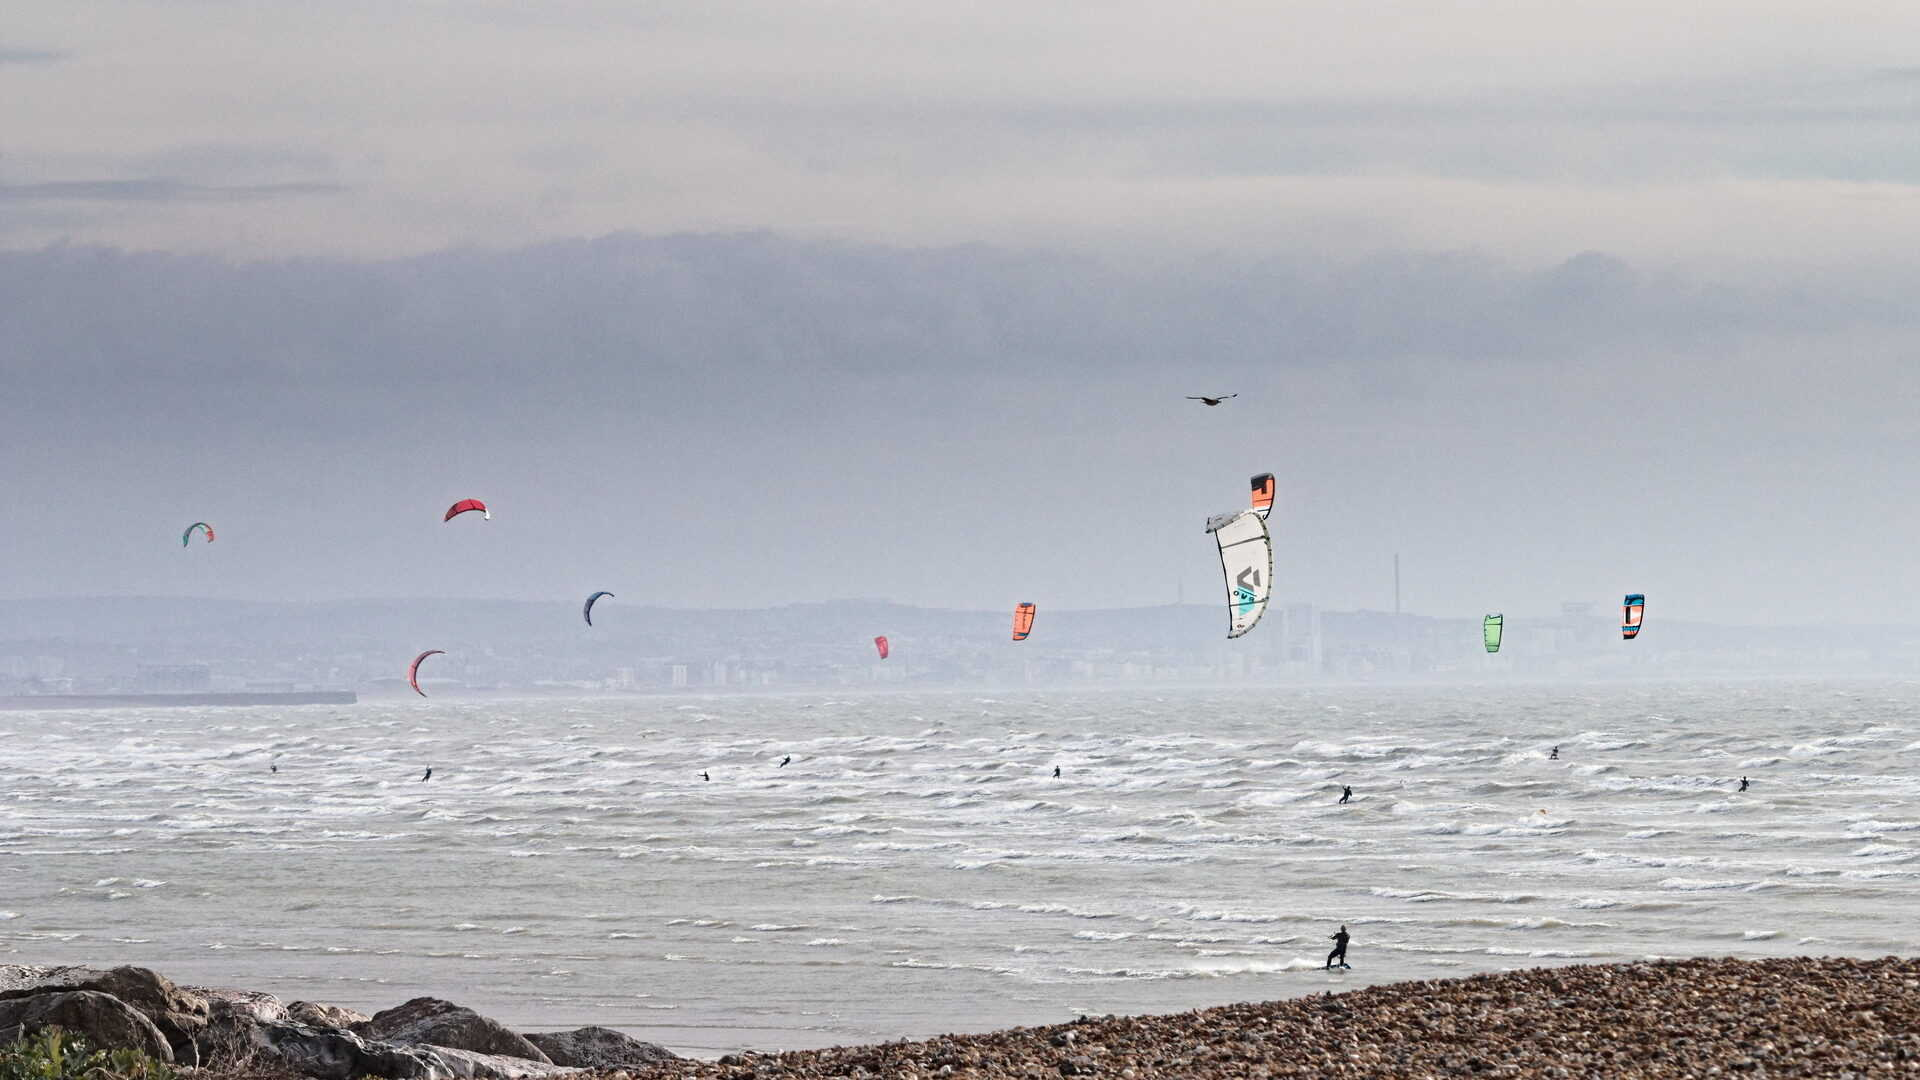 the choppy shoreline of Shoreham bay is peppered with brightly coloured kite surfer kites.